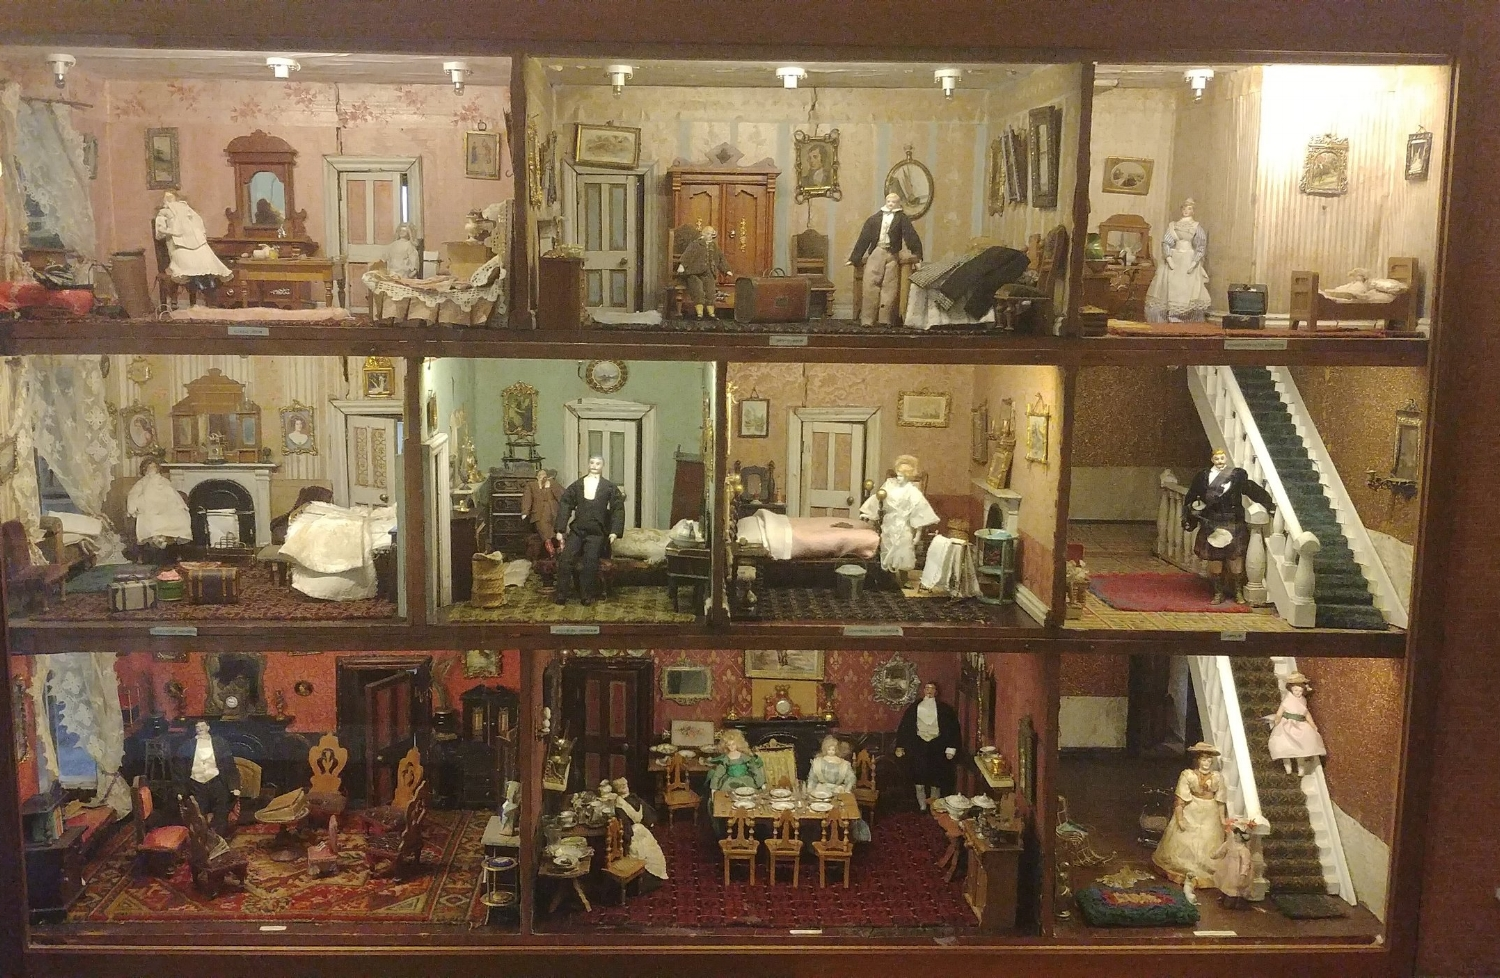 I was obsessed with this dollhouse as a child. Still am.